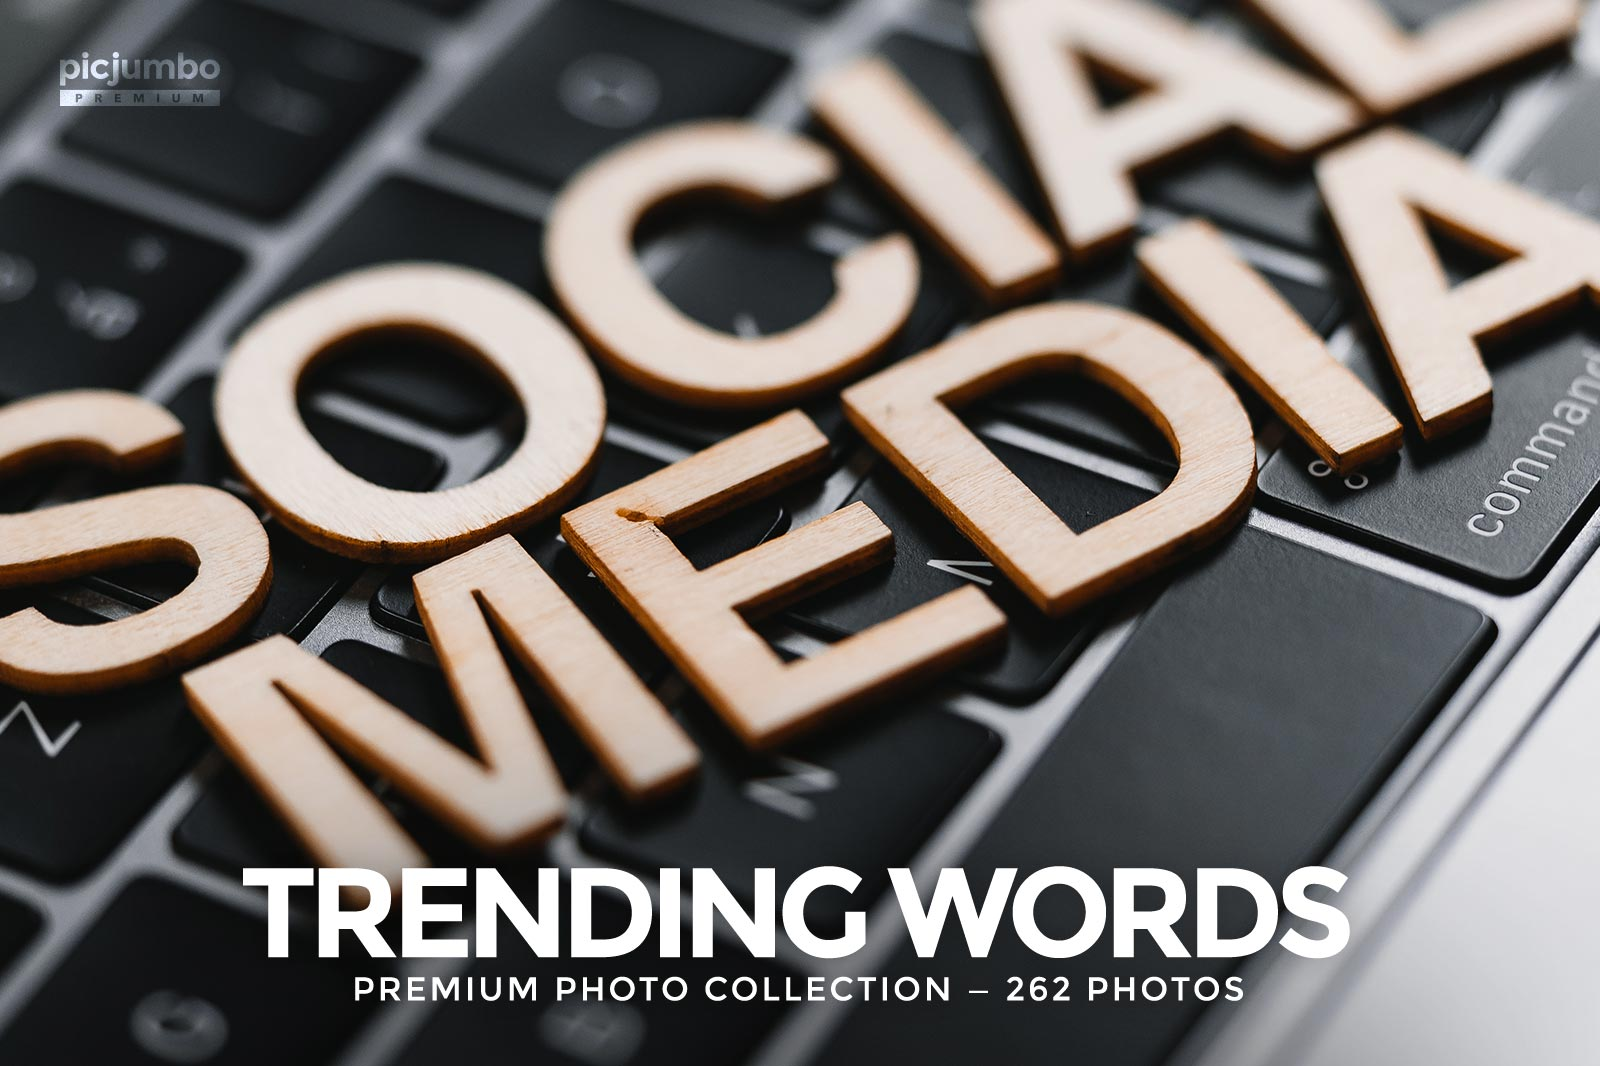 trending-words-stock-photos.jpg